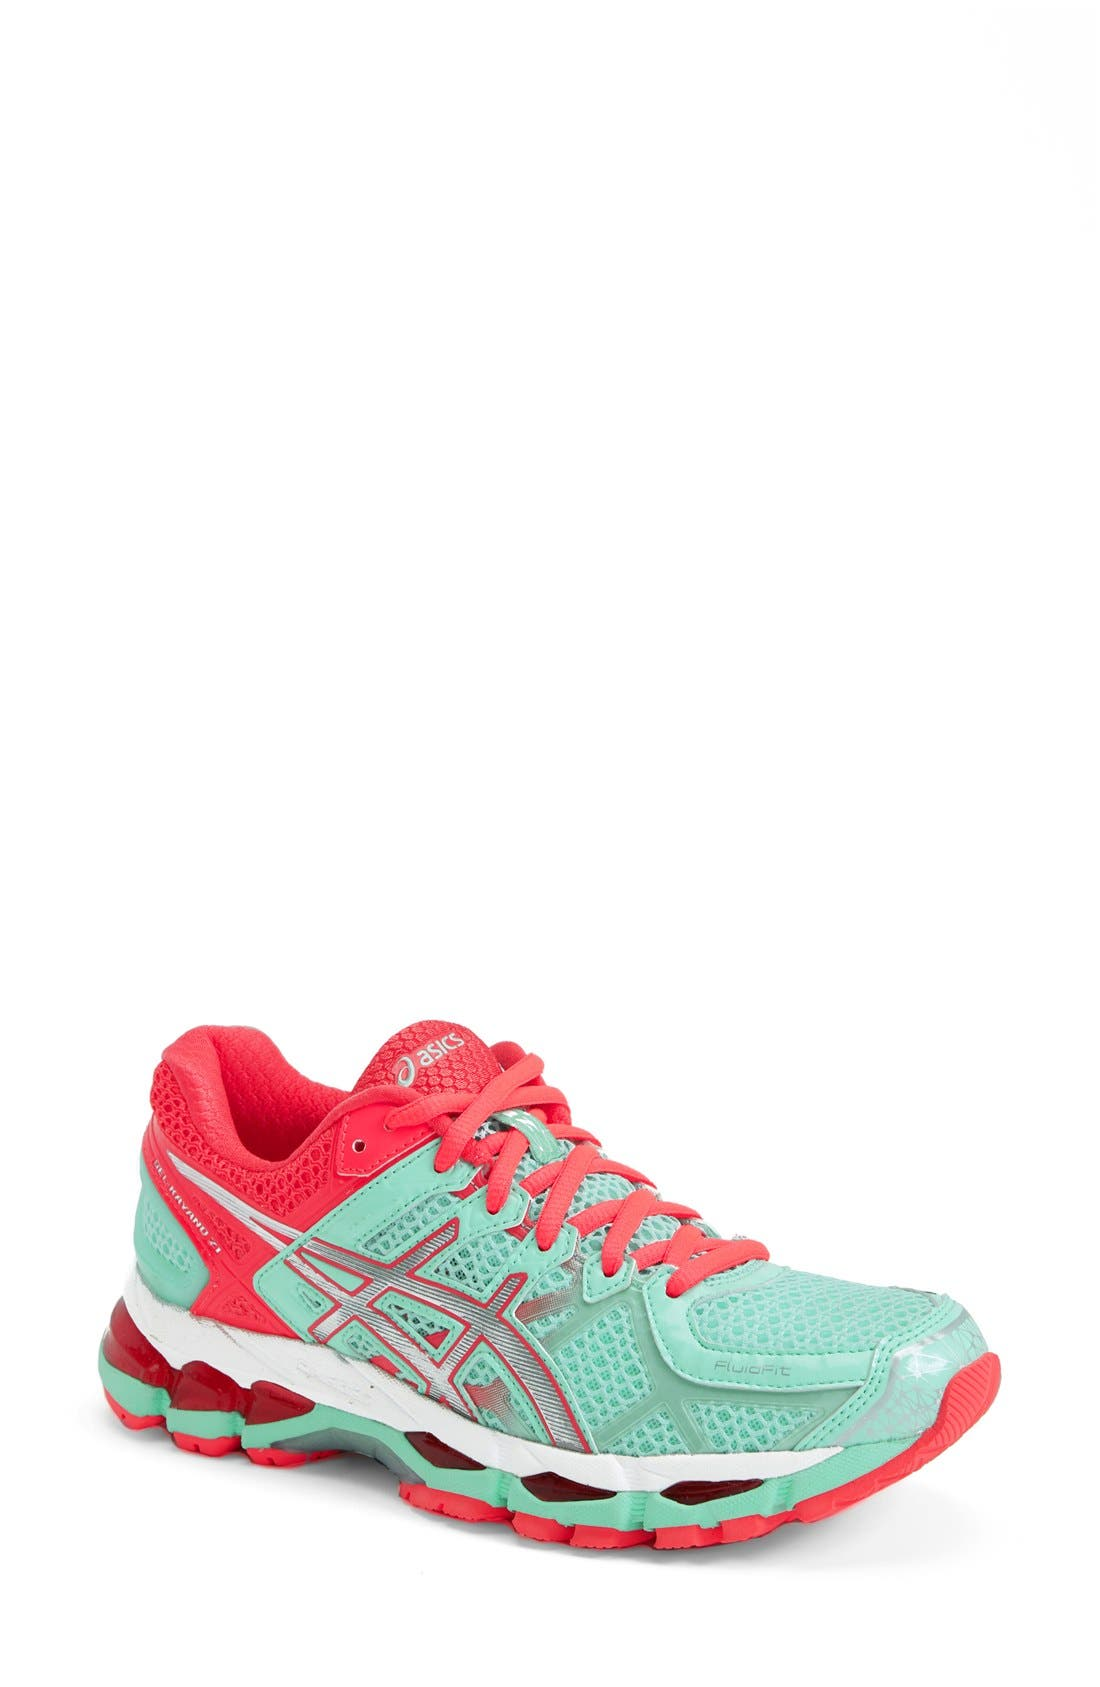 Alternate Image 1 Selected - ASICS® 'GEL-Kayano 21' Running Shoe (Women)(Regular Retail Price: $159.95)